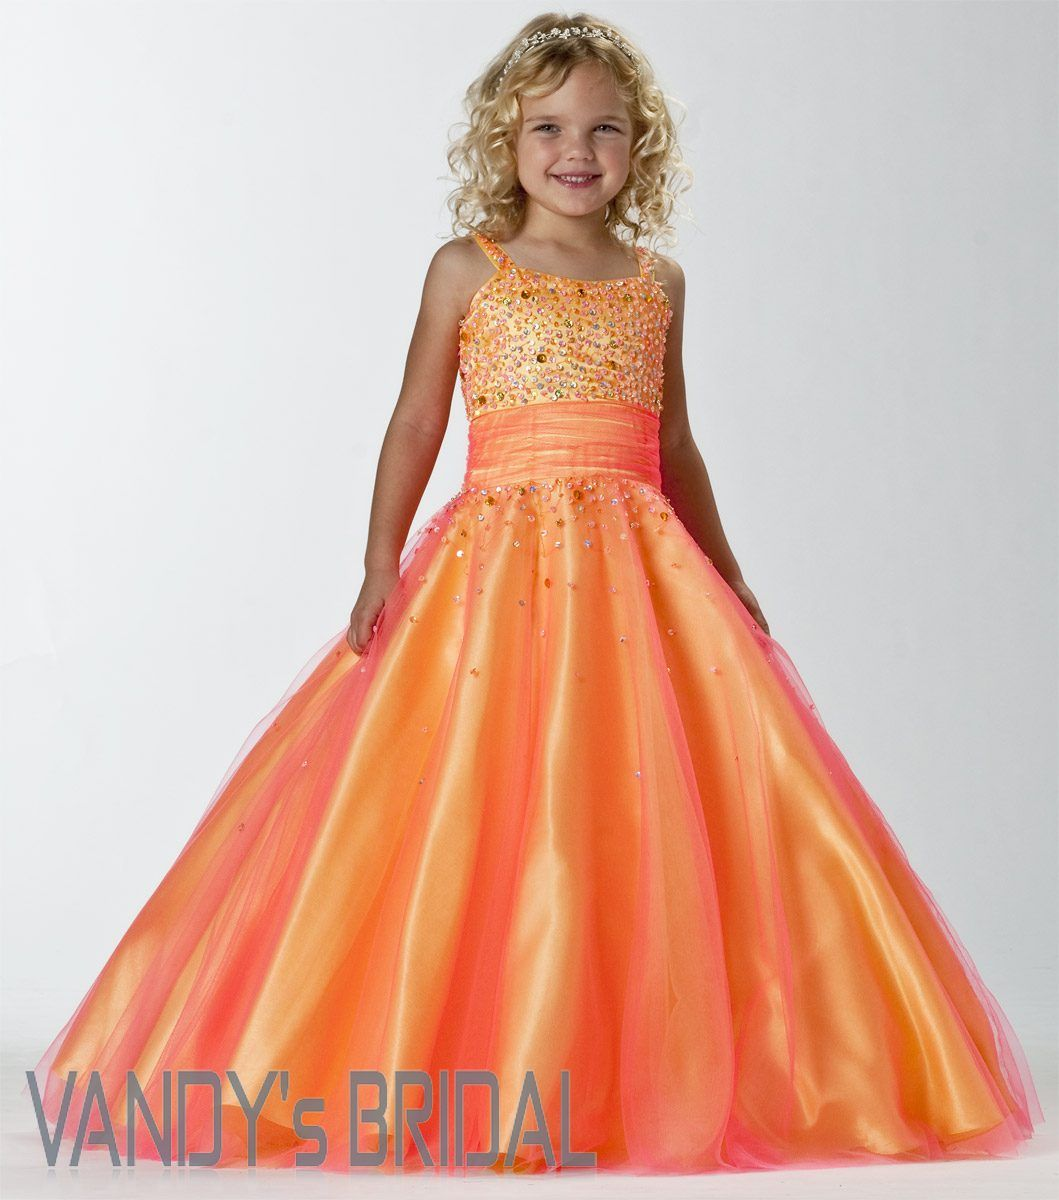 A line strap floor length sleeveless satin orange flower girl dress a line strap floor length sleeveless satin orange flower girl dress beadingjsas7963 izmirmasajfo